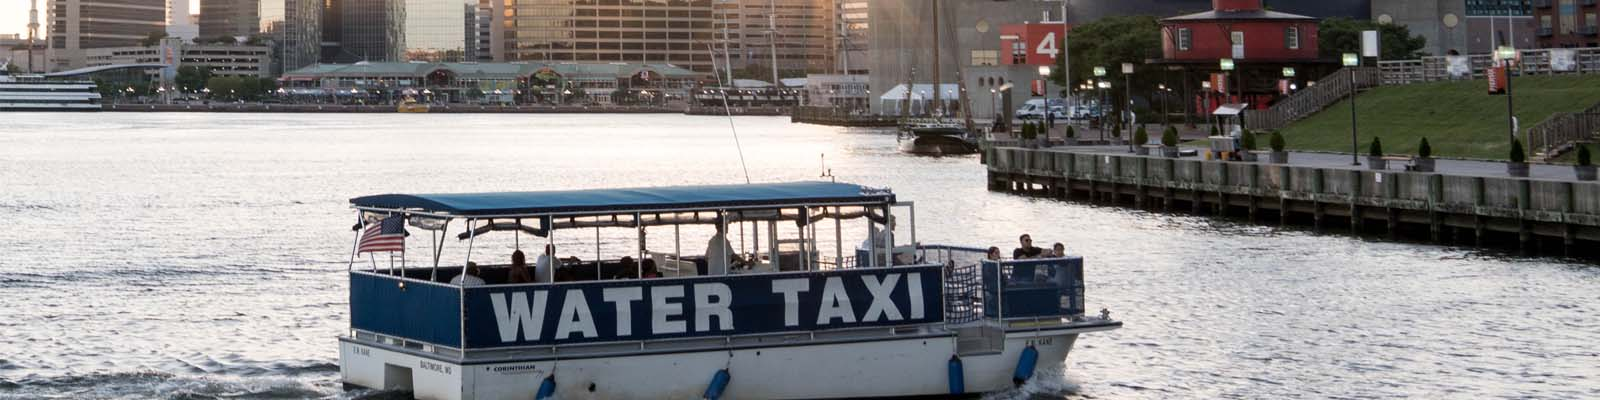 This is an image of a water taxi boat in Baltimore Maryland where ASTA-USA provides professional translation services.